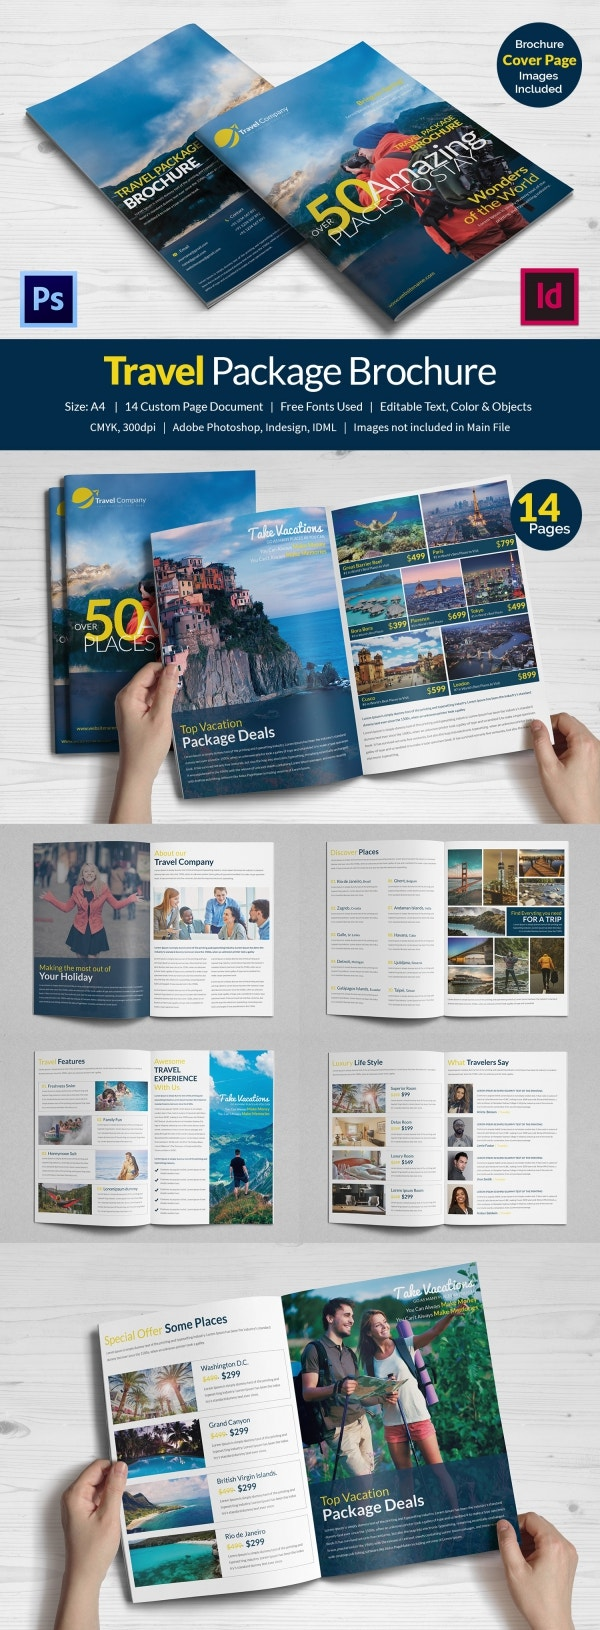 TravelPackage_Brochure